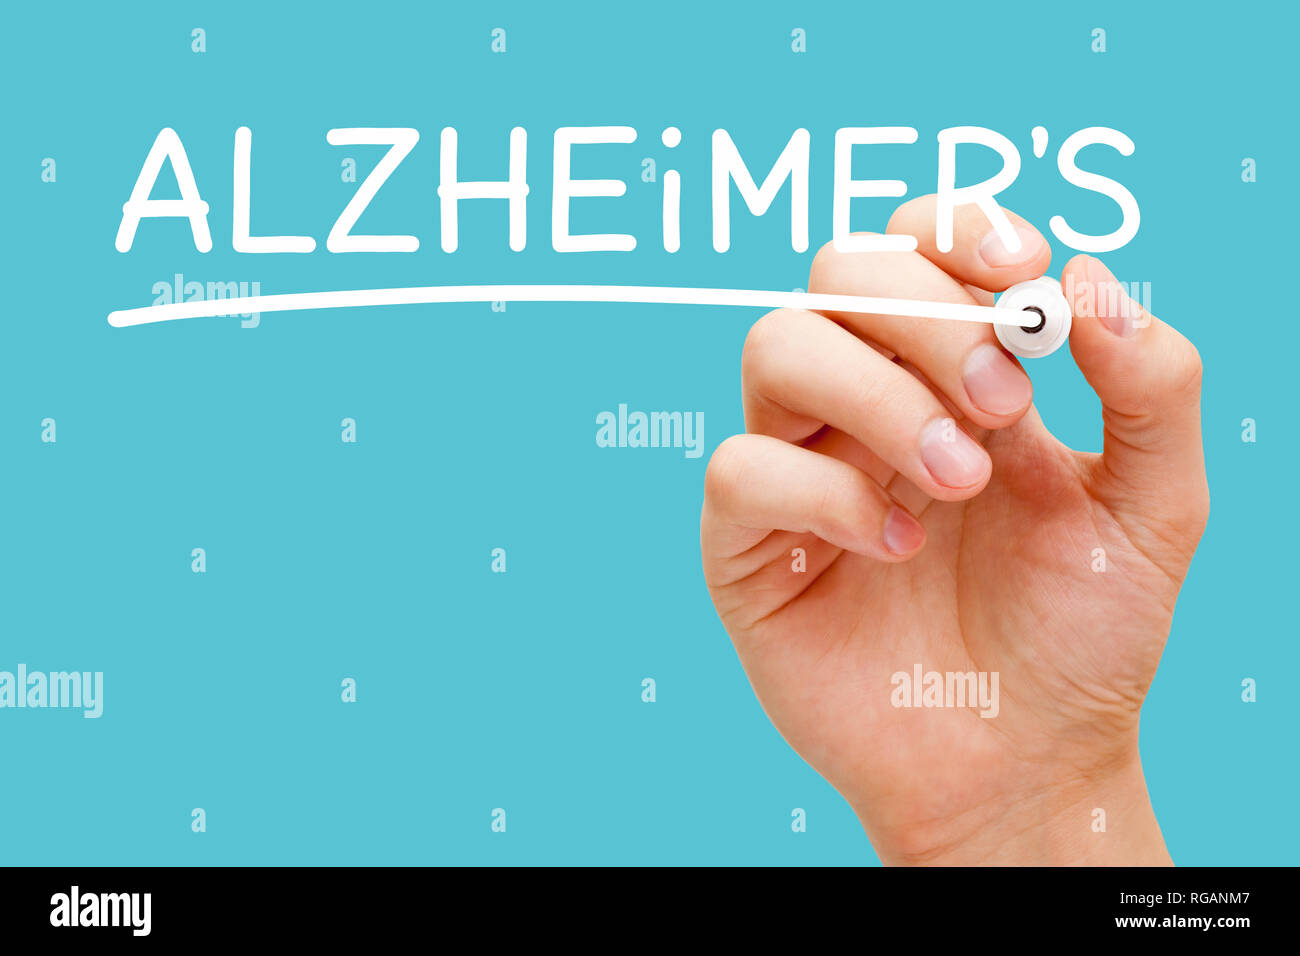 Hand writing Alzheimer's disease with white marker on transparent wipe board isolated on blue background. - Stock Image